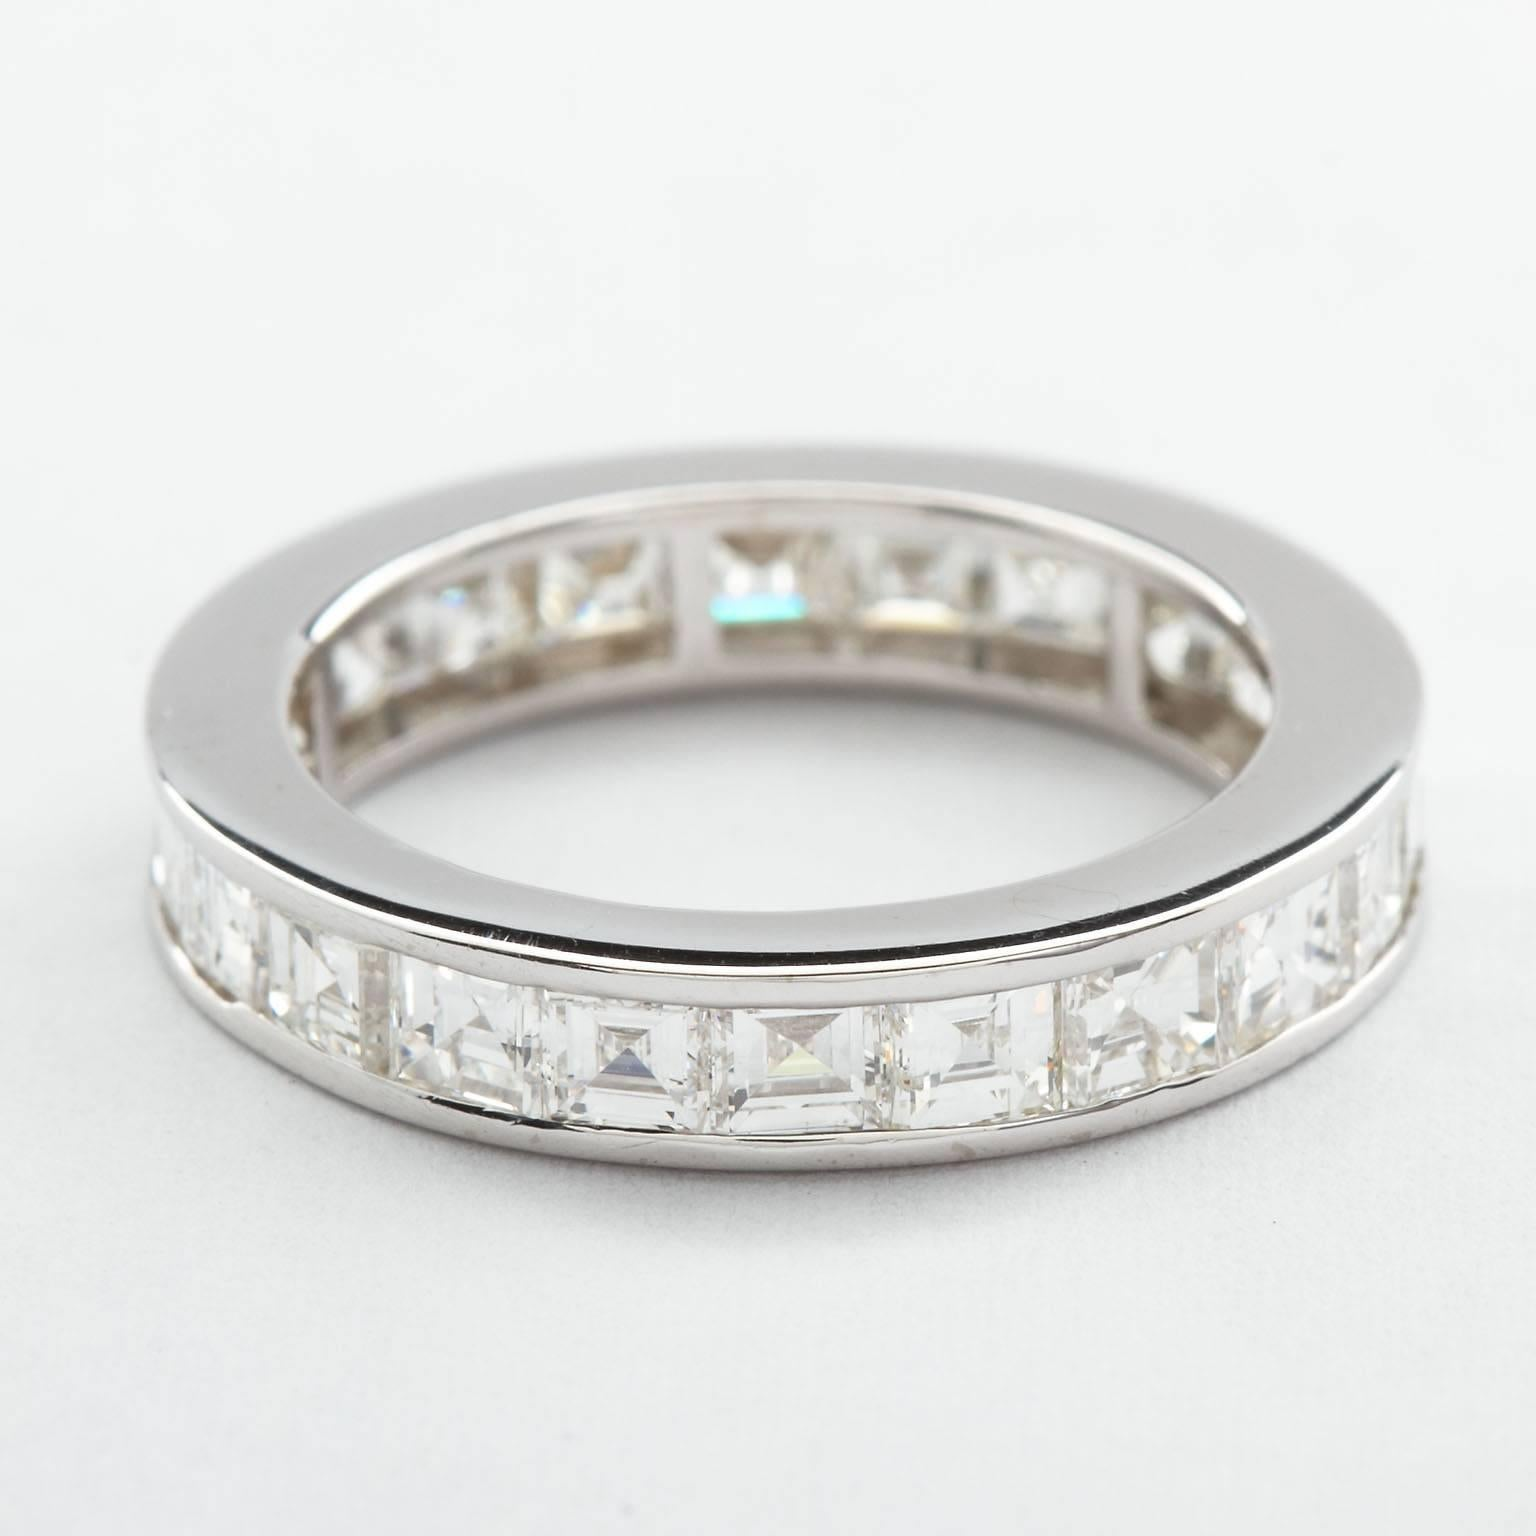 sizes different eb ring diamond jewellery en bands band wg eternity baguette